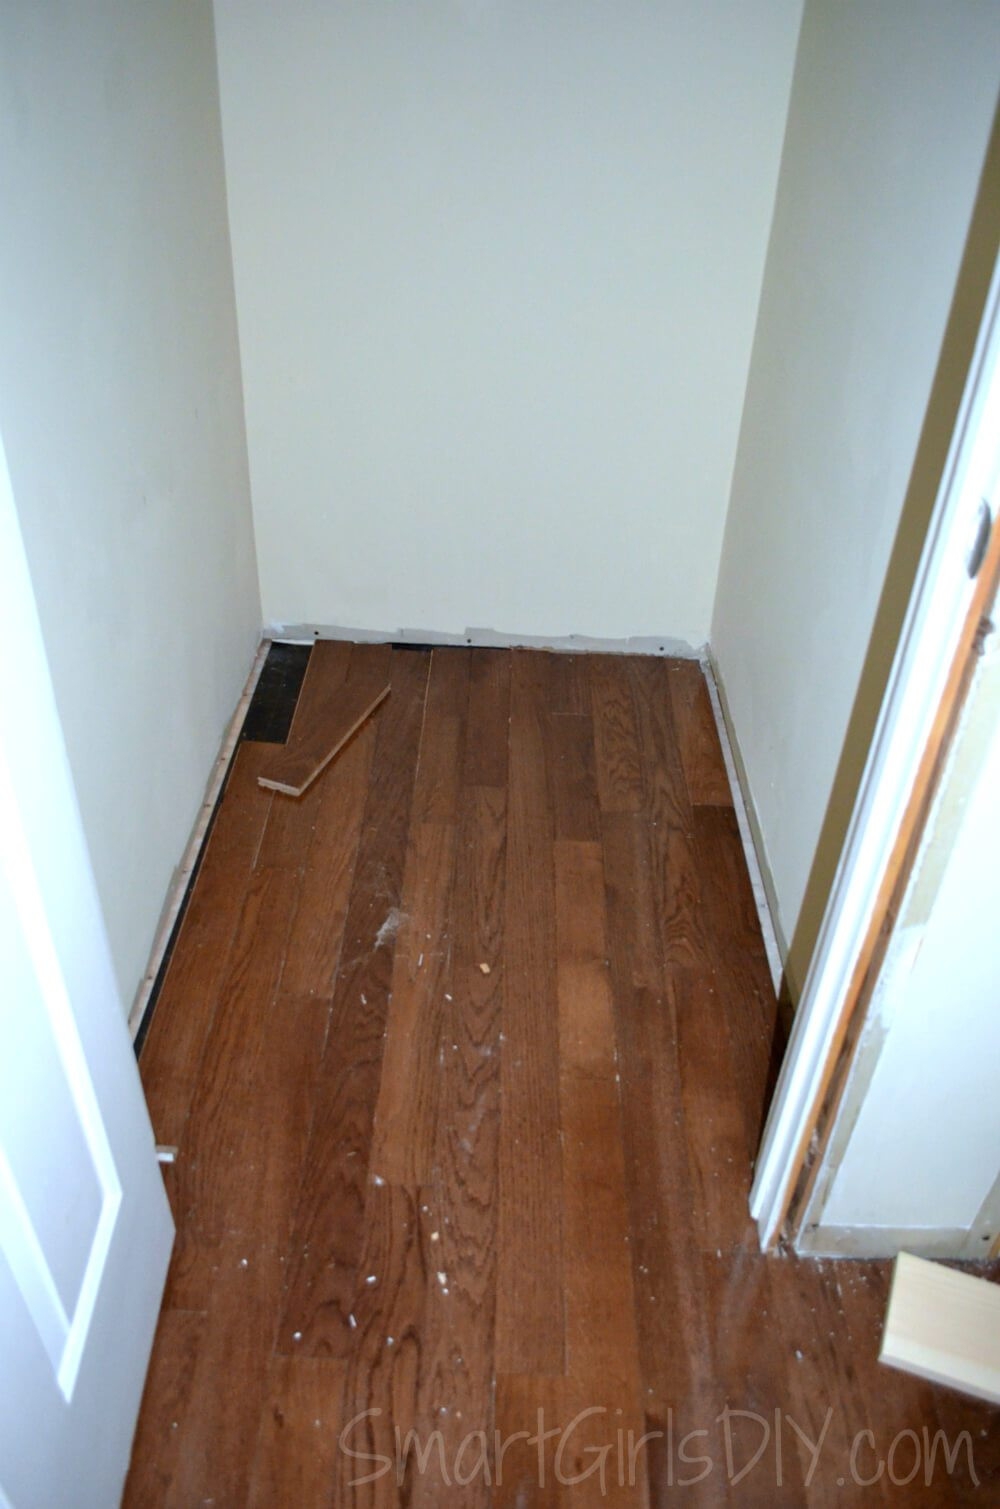 16 Nice How to Install Hardwood Floors On Stairs Landing 2021 free download how to install hardwood floors on stairs landing of upstairs hallway 1 installing hardwood floors with regard to hardwood extends into closet